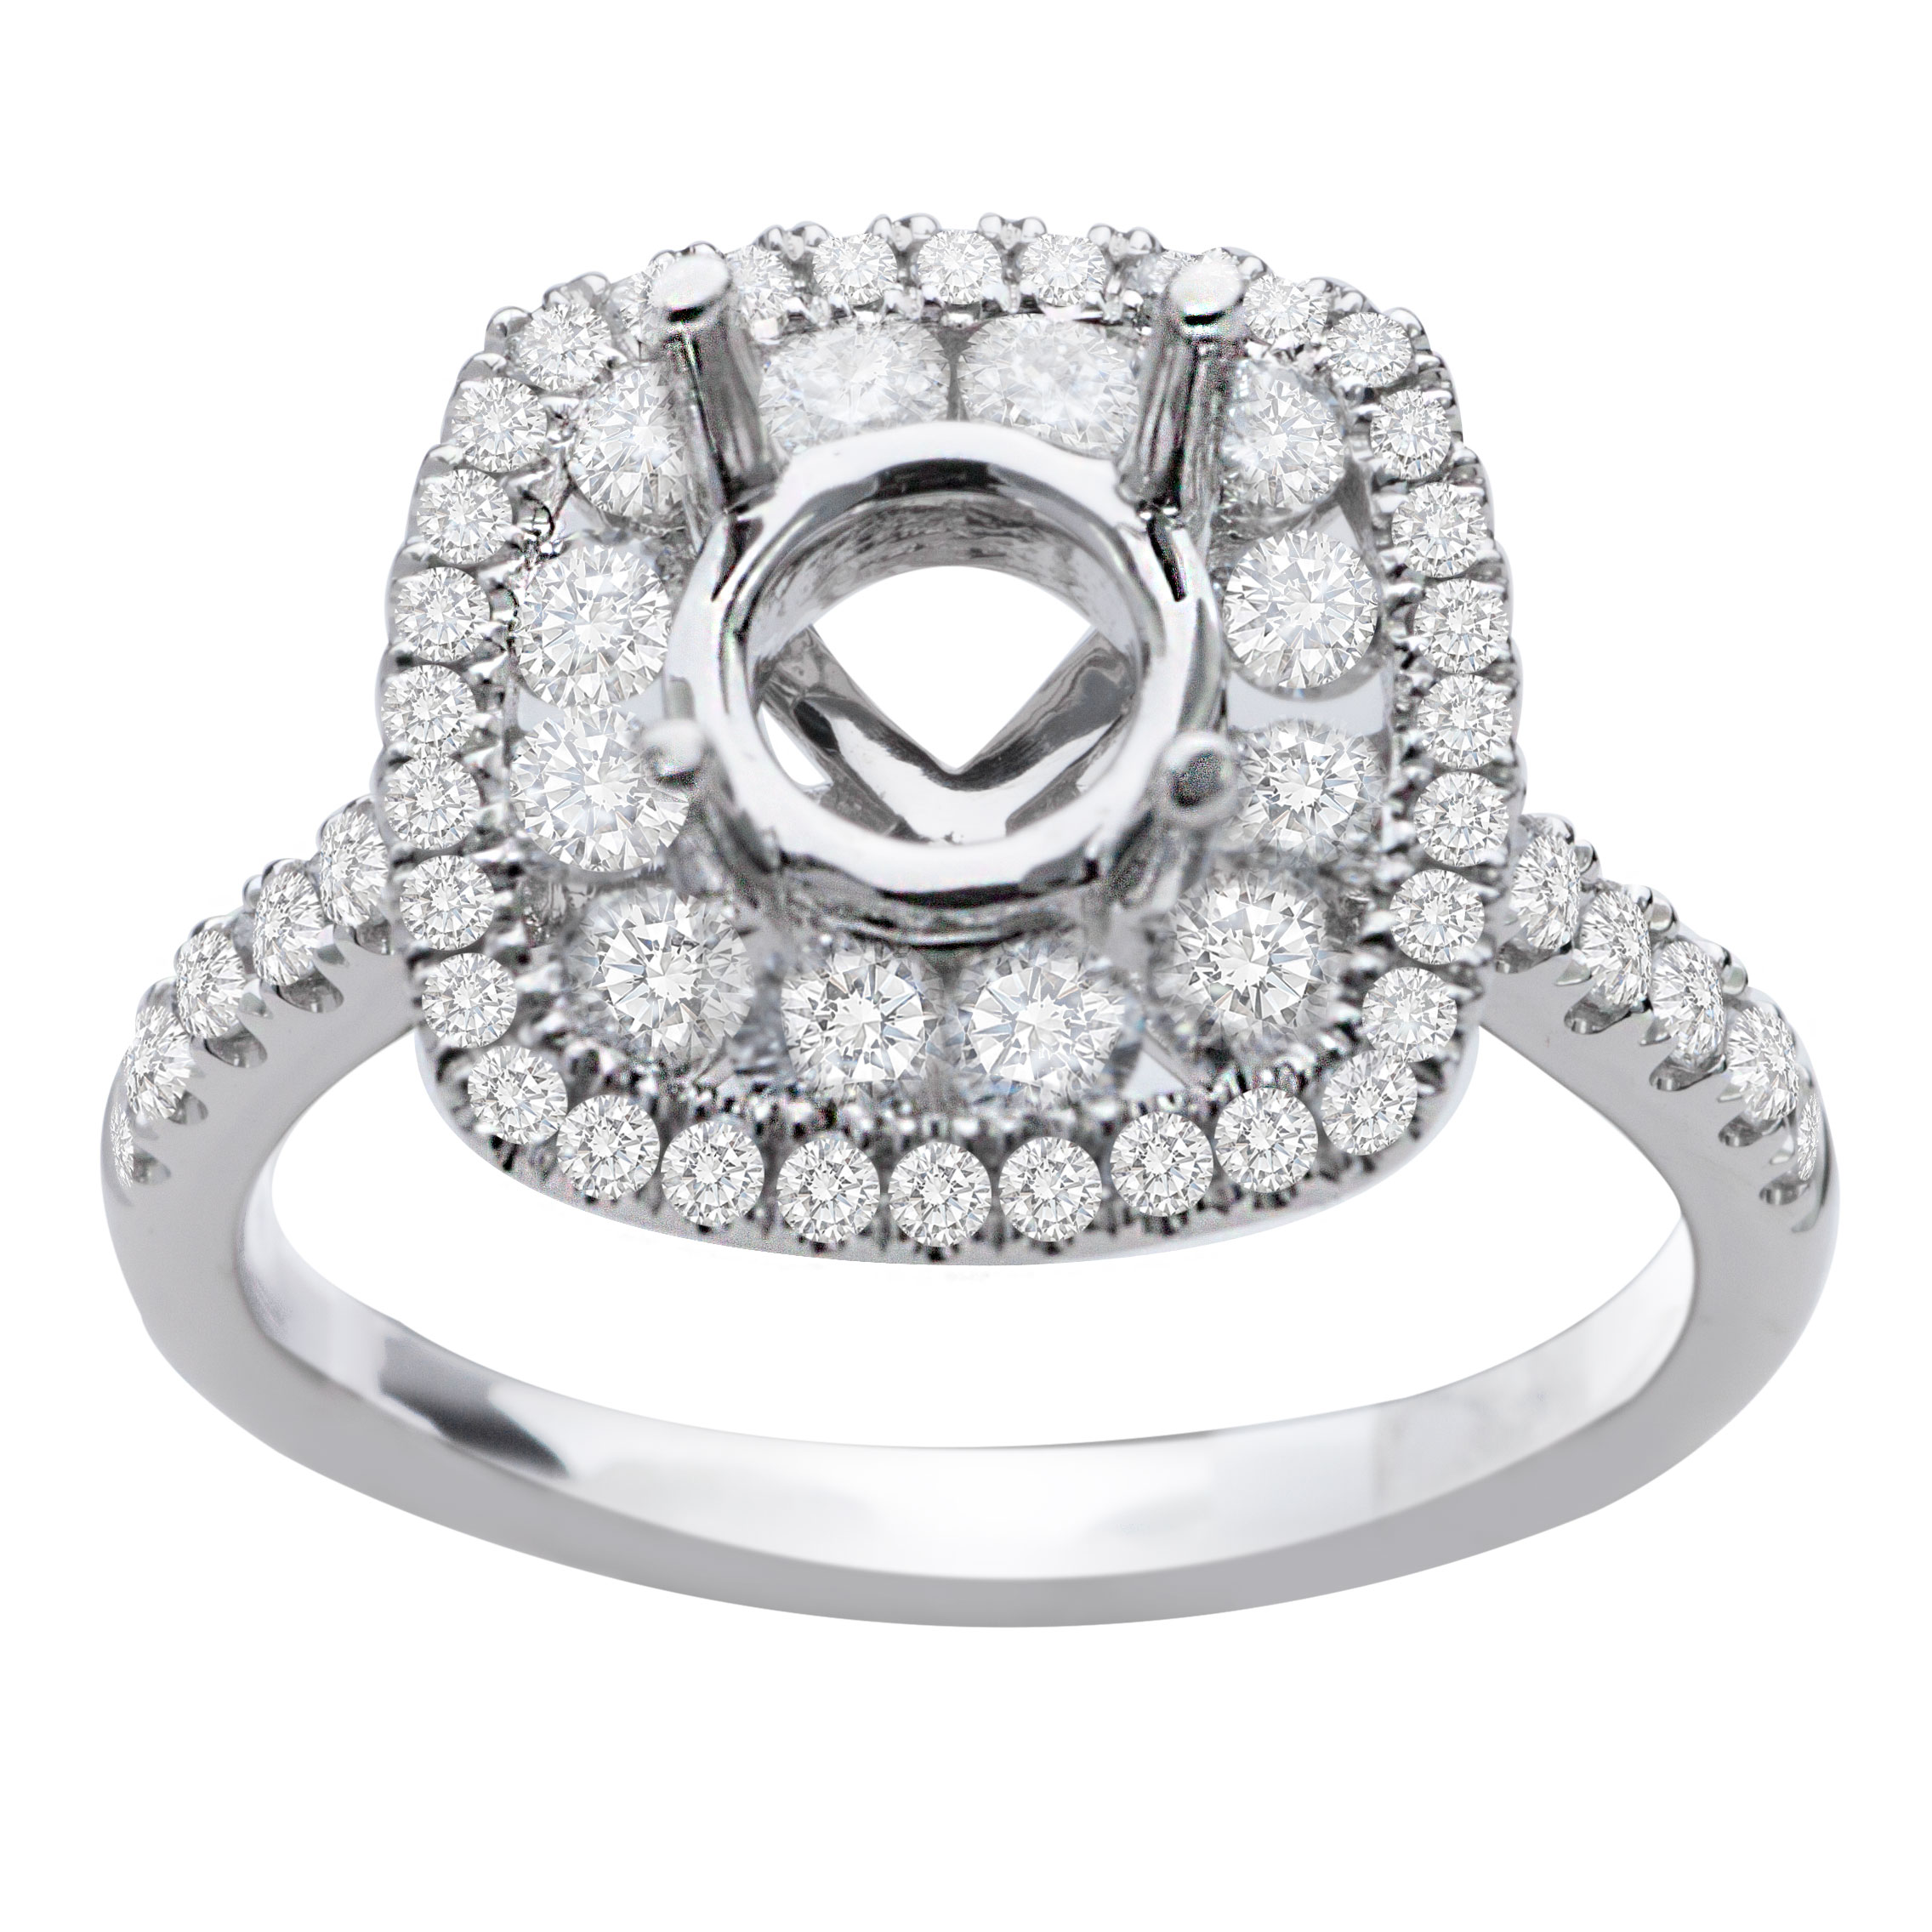 Hazel Double Halo Engagement Ring in 14K White Gold; 0.85 ctw image 1